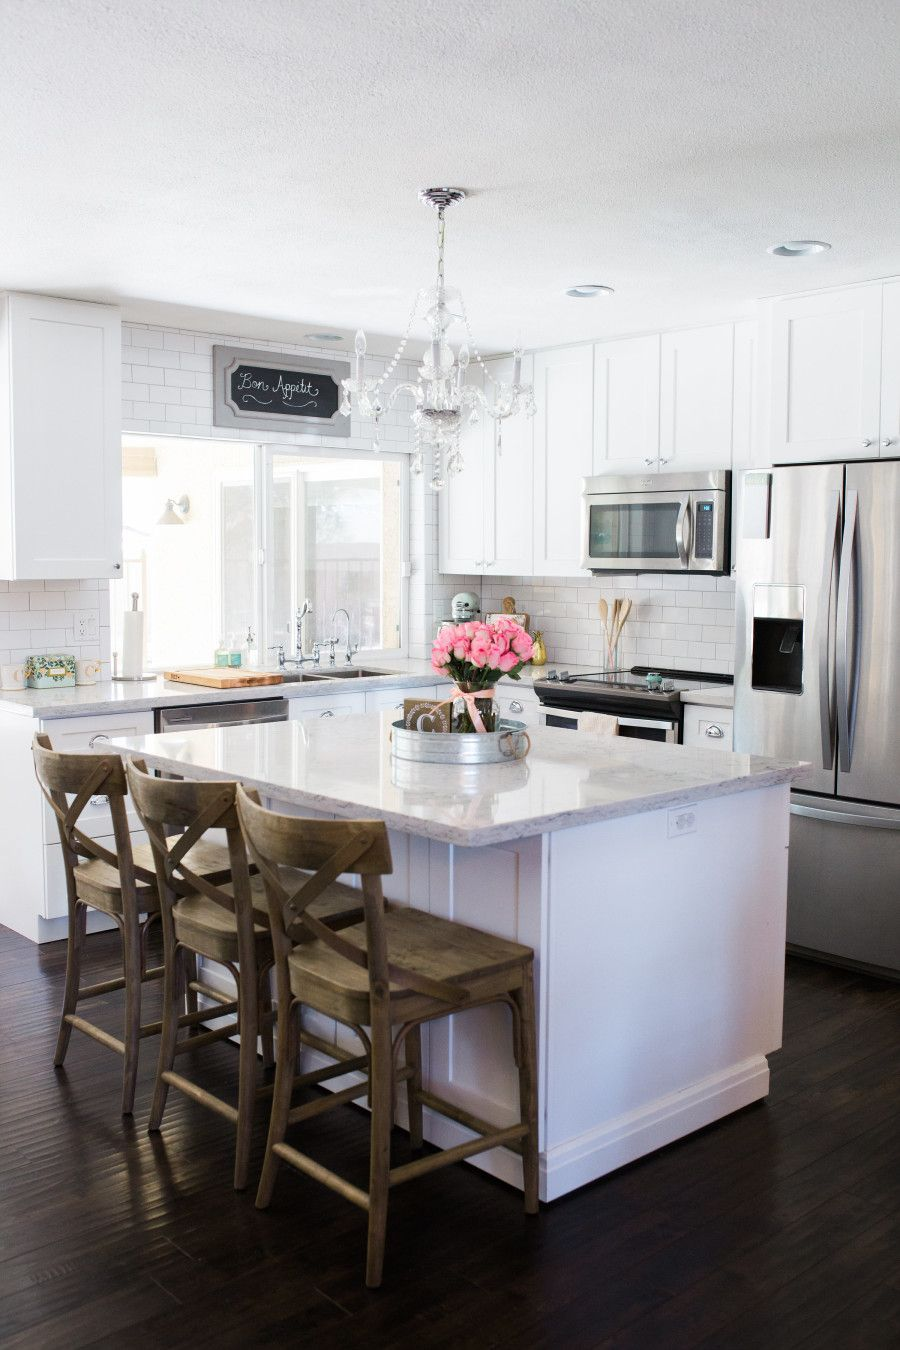 Kitchen remodel on a budget for under $10,000 -Sharing our insight ...